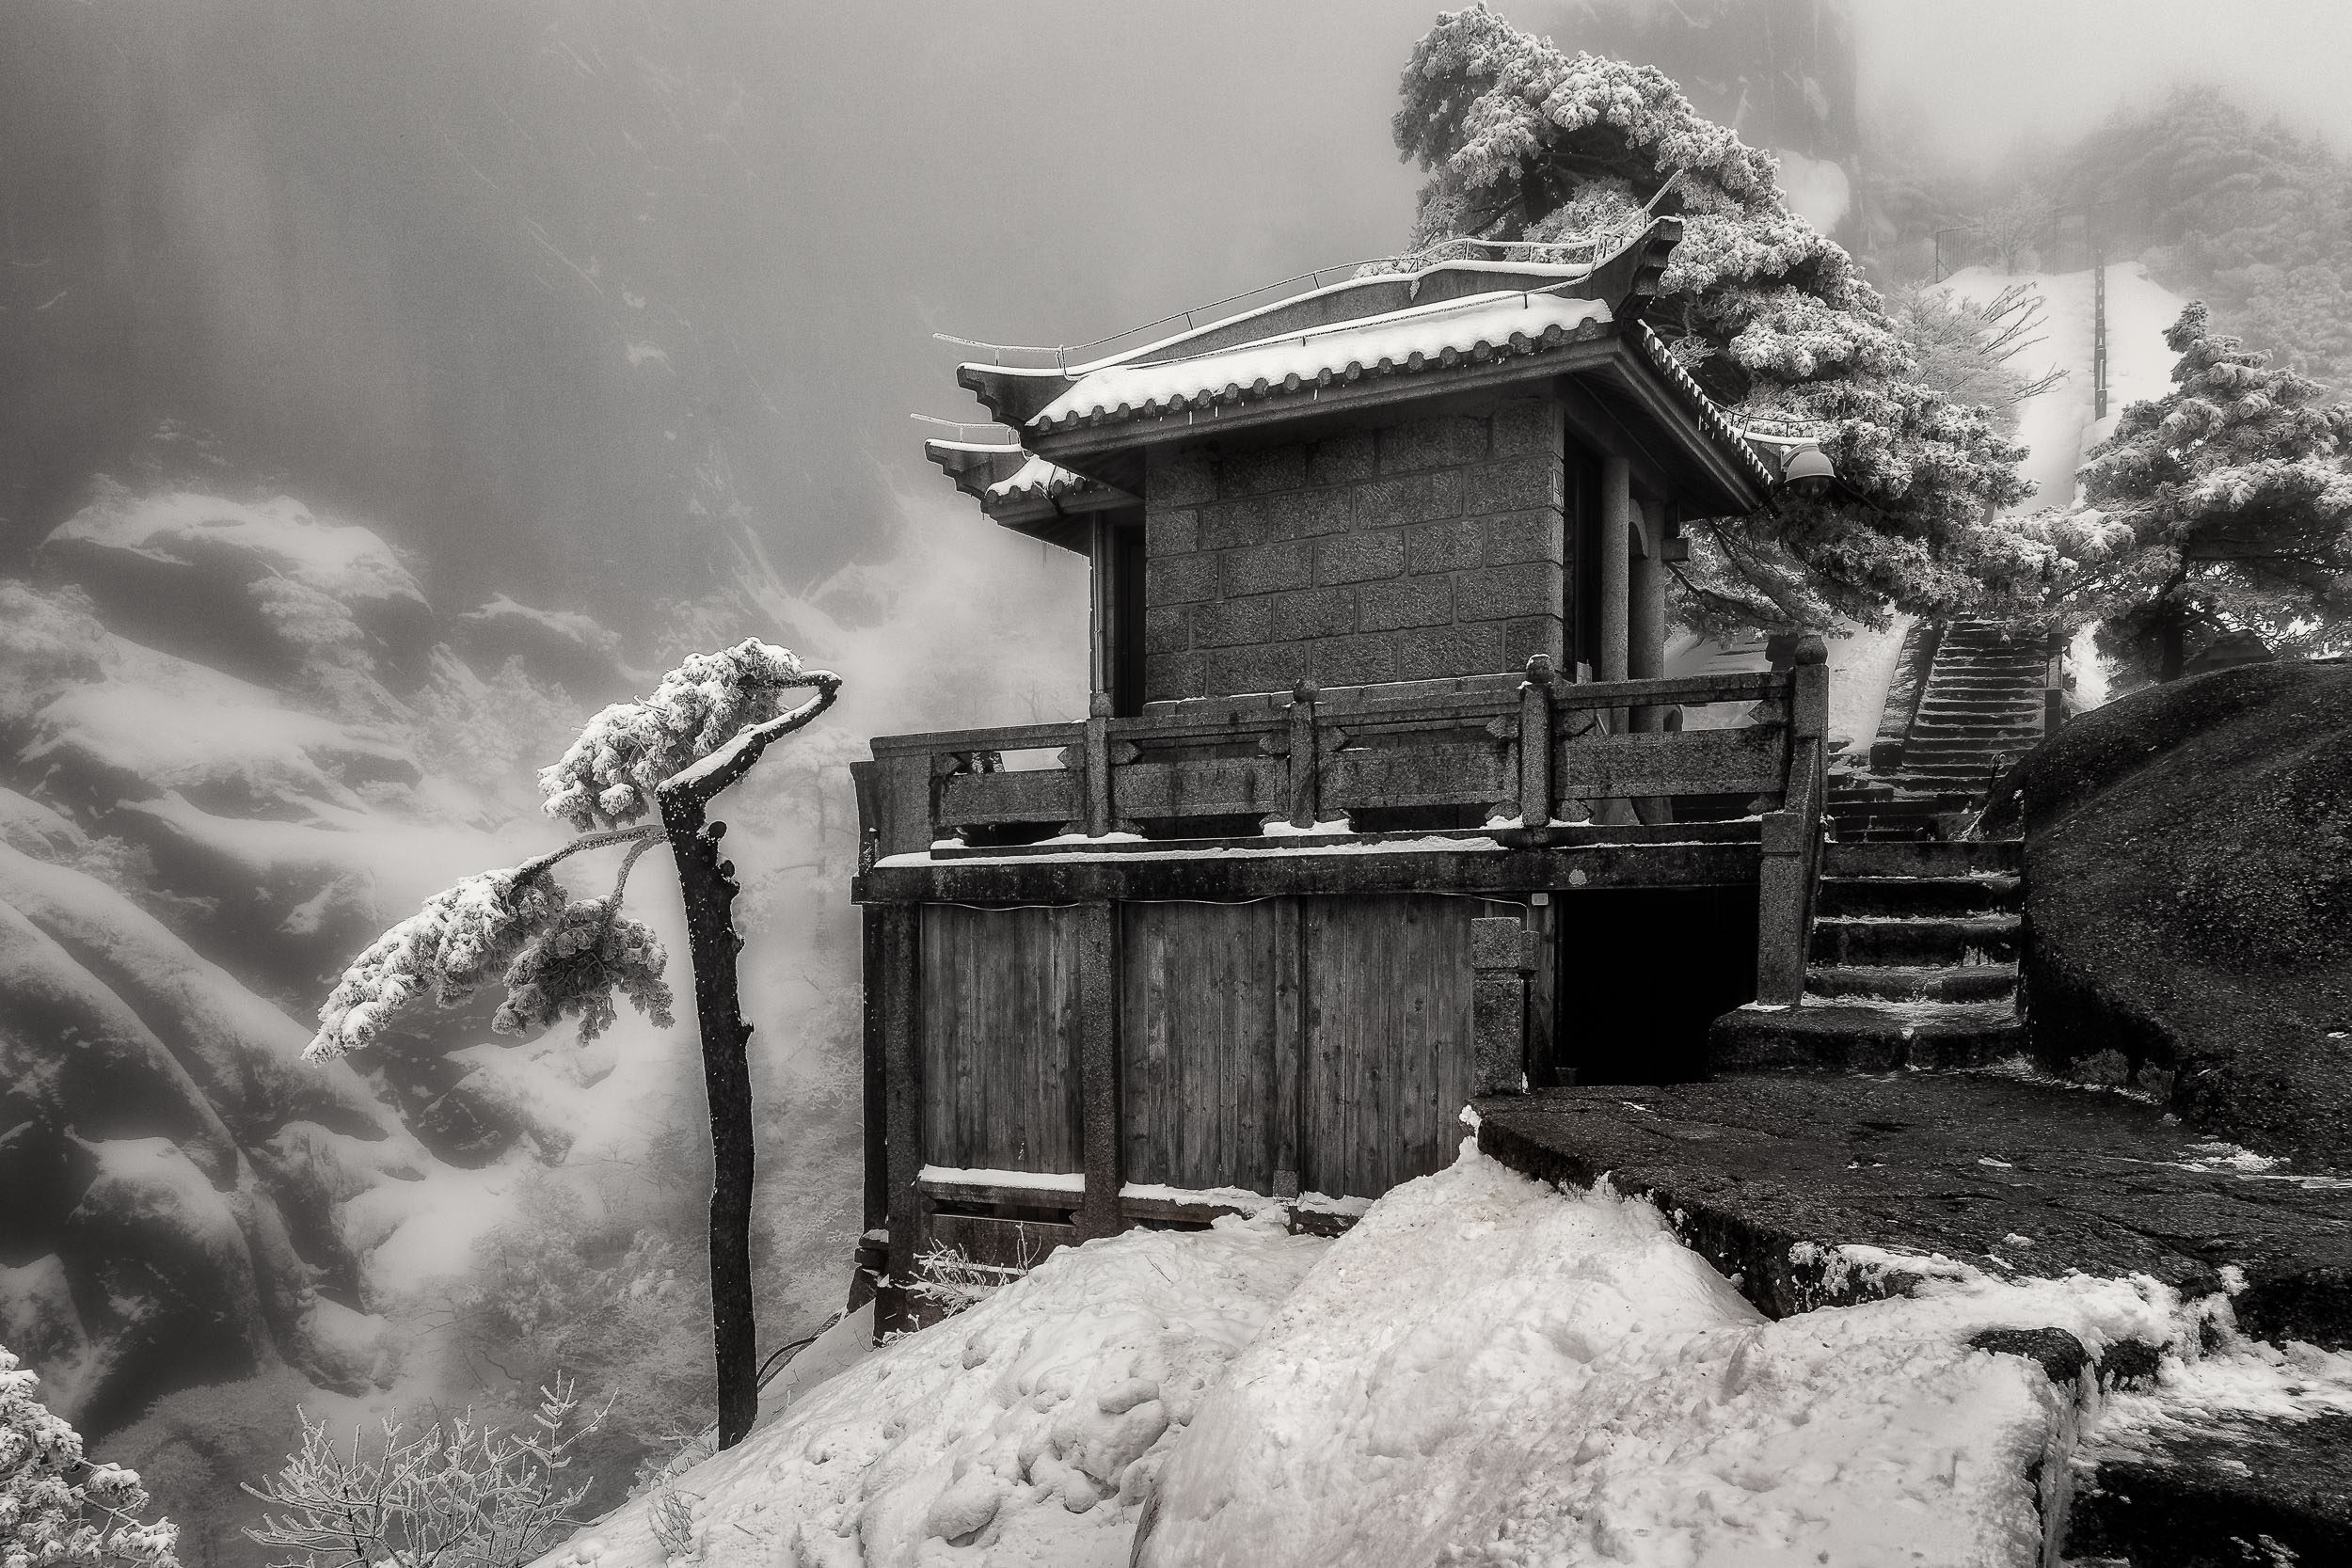 A  rest stop for travelers  near the top of a  high, windswept pass  on  Huangshan  (i.e., Yellow Mountain) in  China .